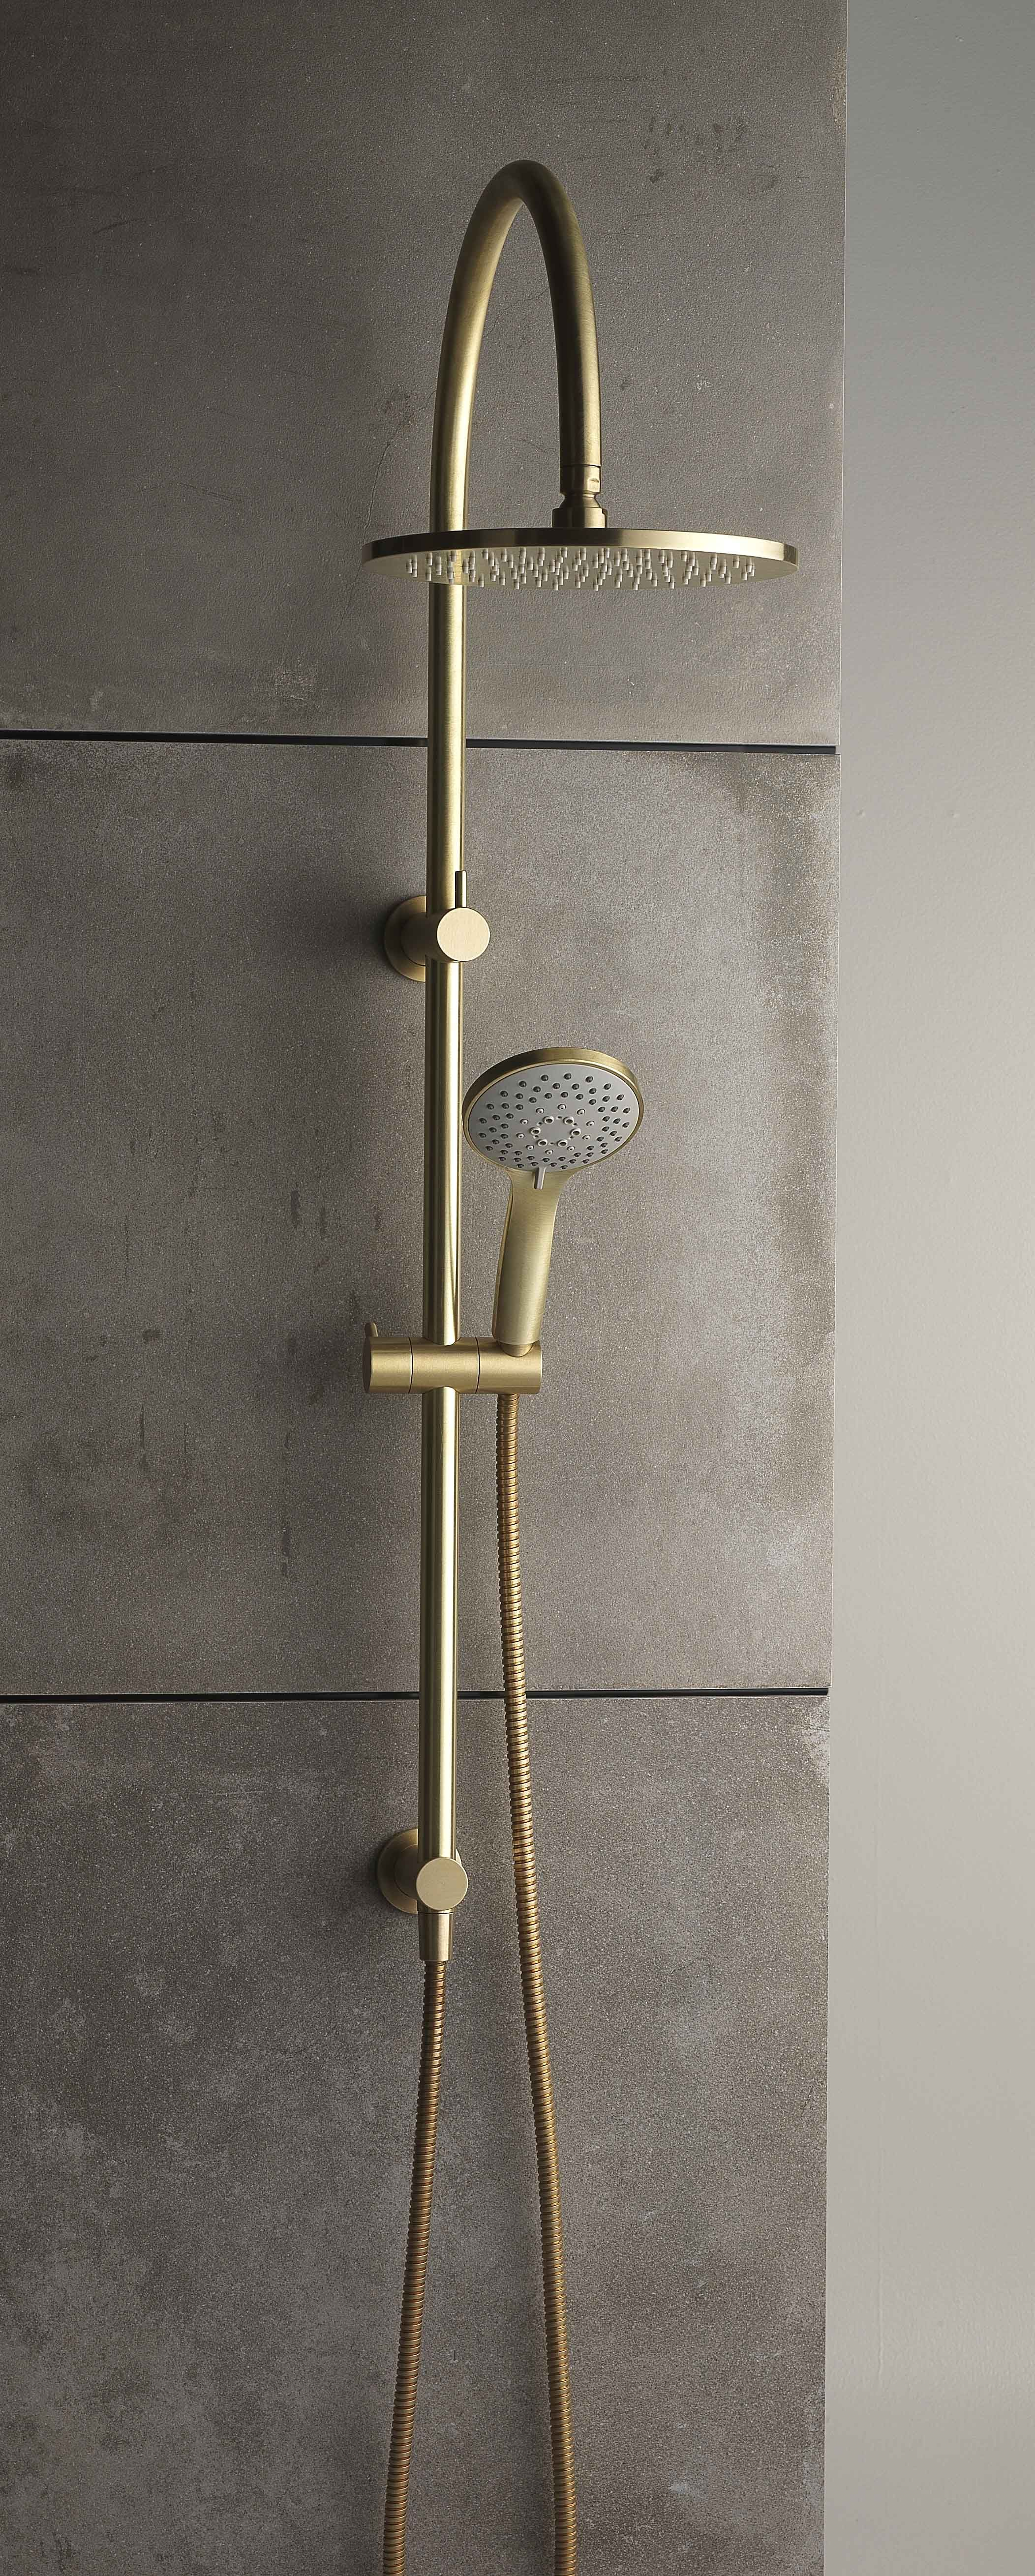 Browse our full range of Dual Showers online at #faucetstrommen and ...